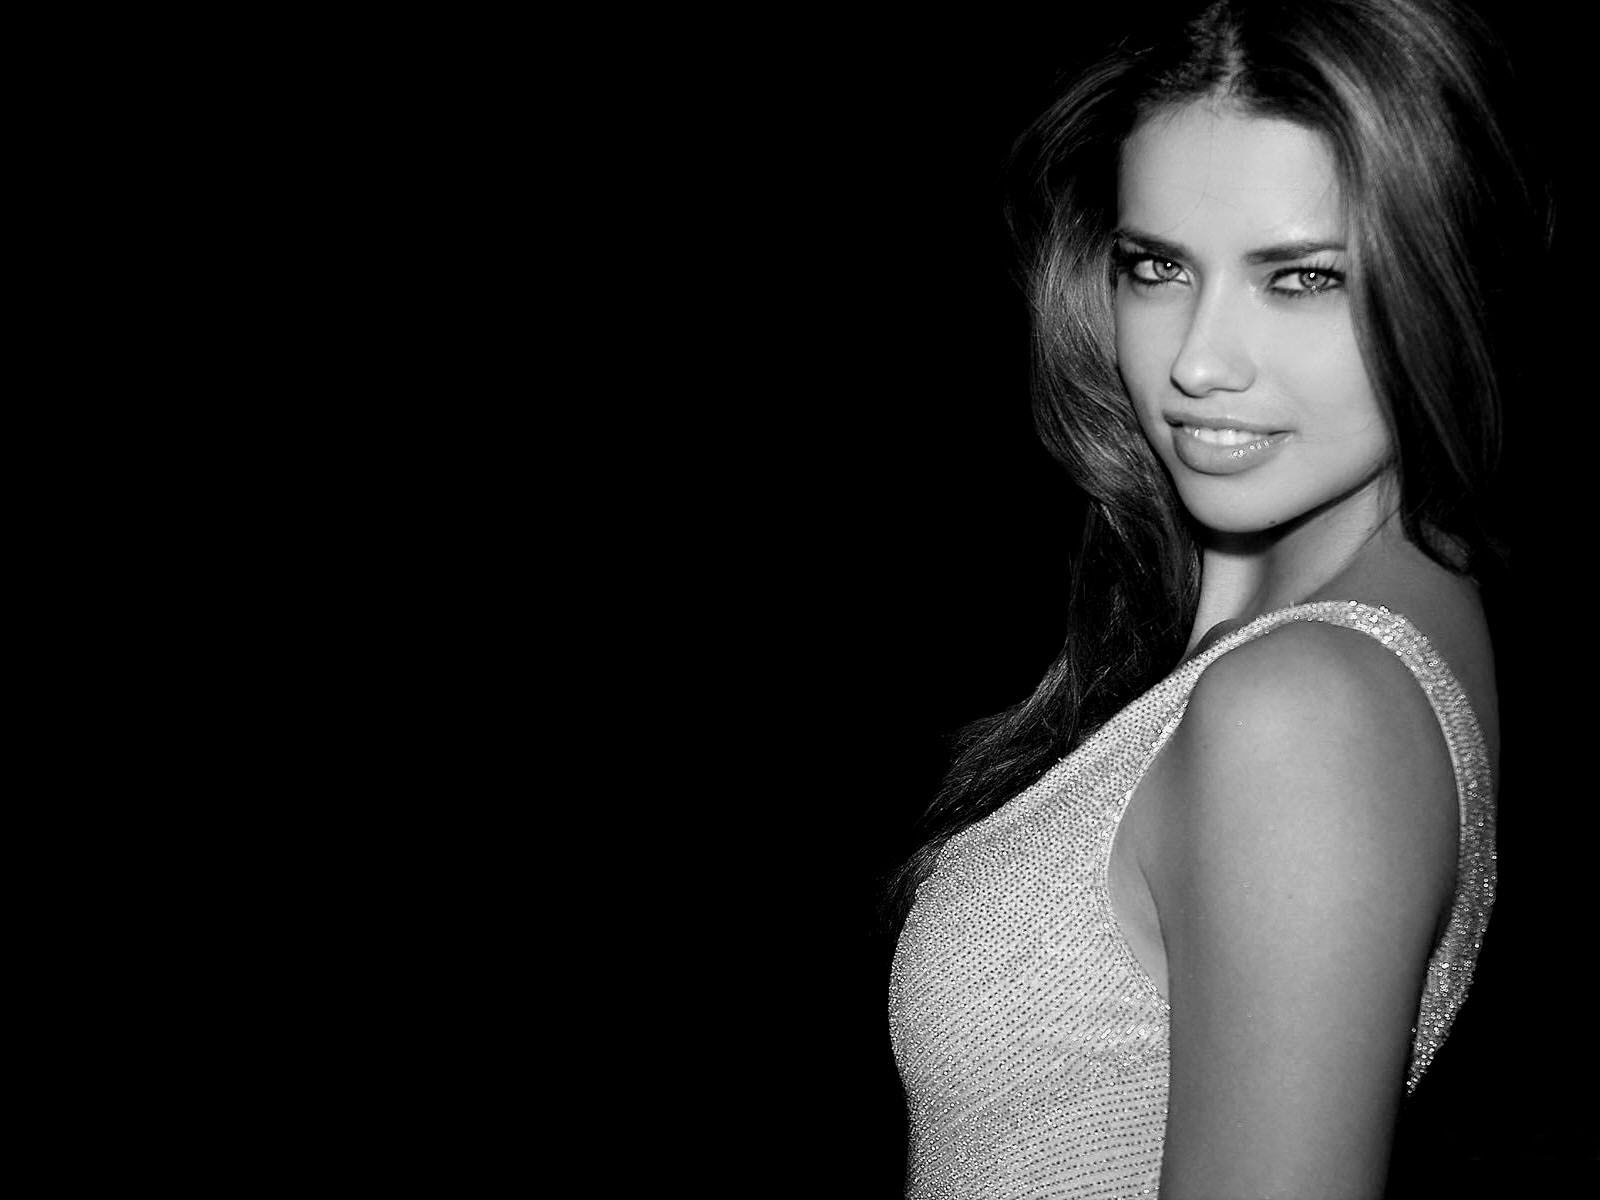 Wallpaper highlights adriana lima wallpapers adriana lima wallpapers voltagebd